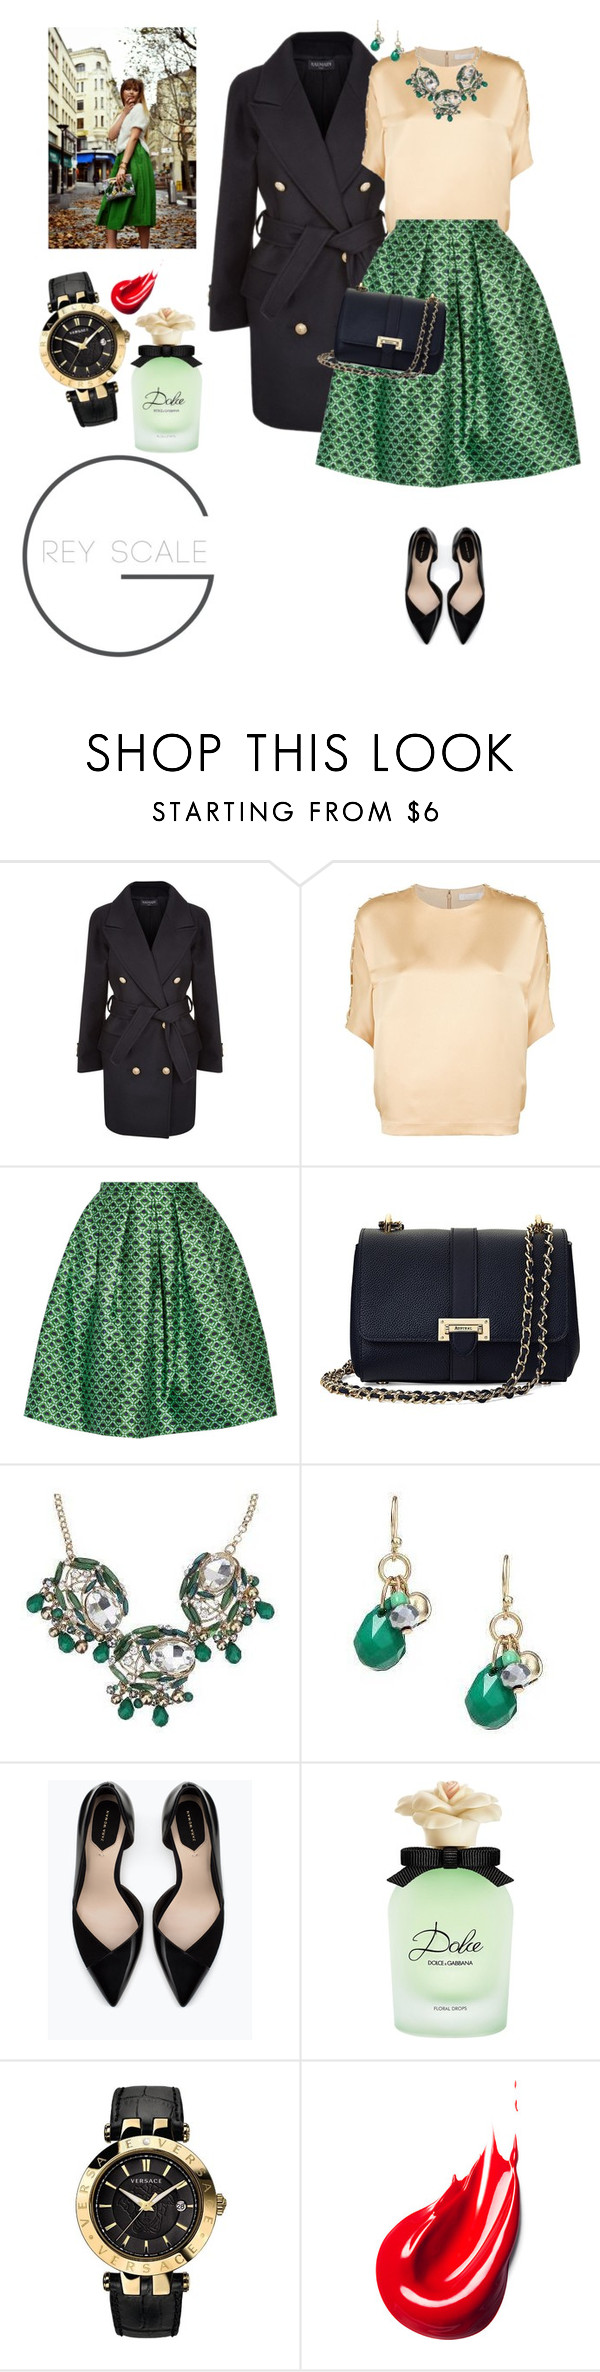 """Be you"" by lera-chyzh ❤ liked on Polyvore featuring Balmain, Chloé, Oscar de la Renta, Aspinal of London, Zara, Dolce&Gabbana and Versace"